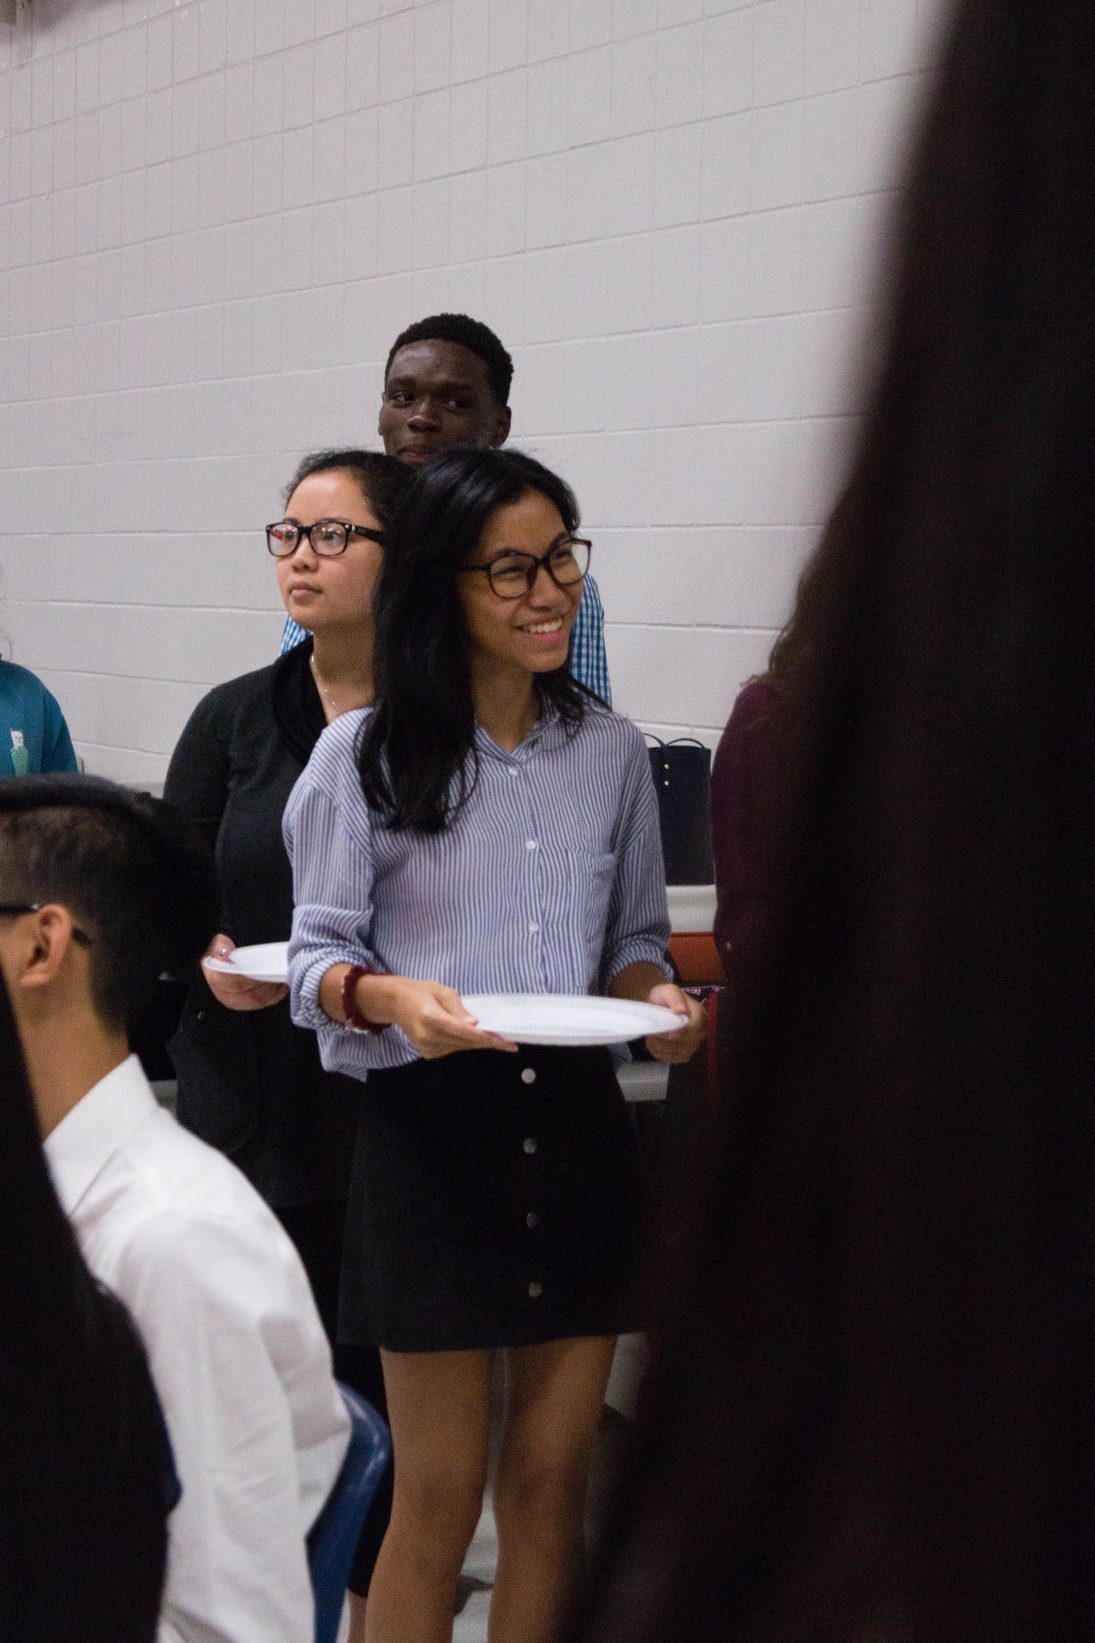 David Balogun (11), Song Nguyen (11), and Kristine Nguyen (12) impatiently wait in line for the pasta and salad for their lesson on eating etiquette.